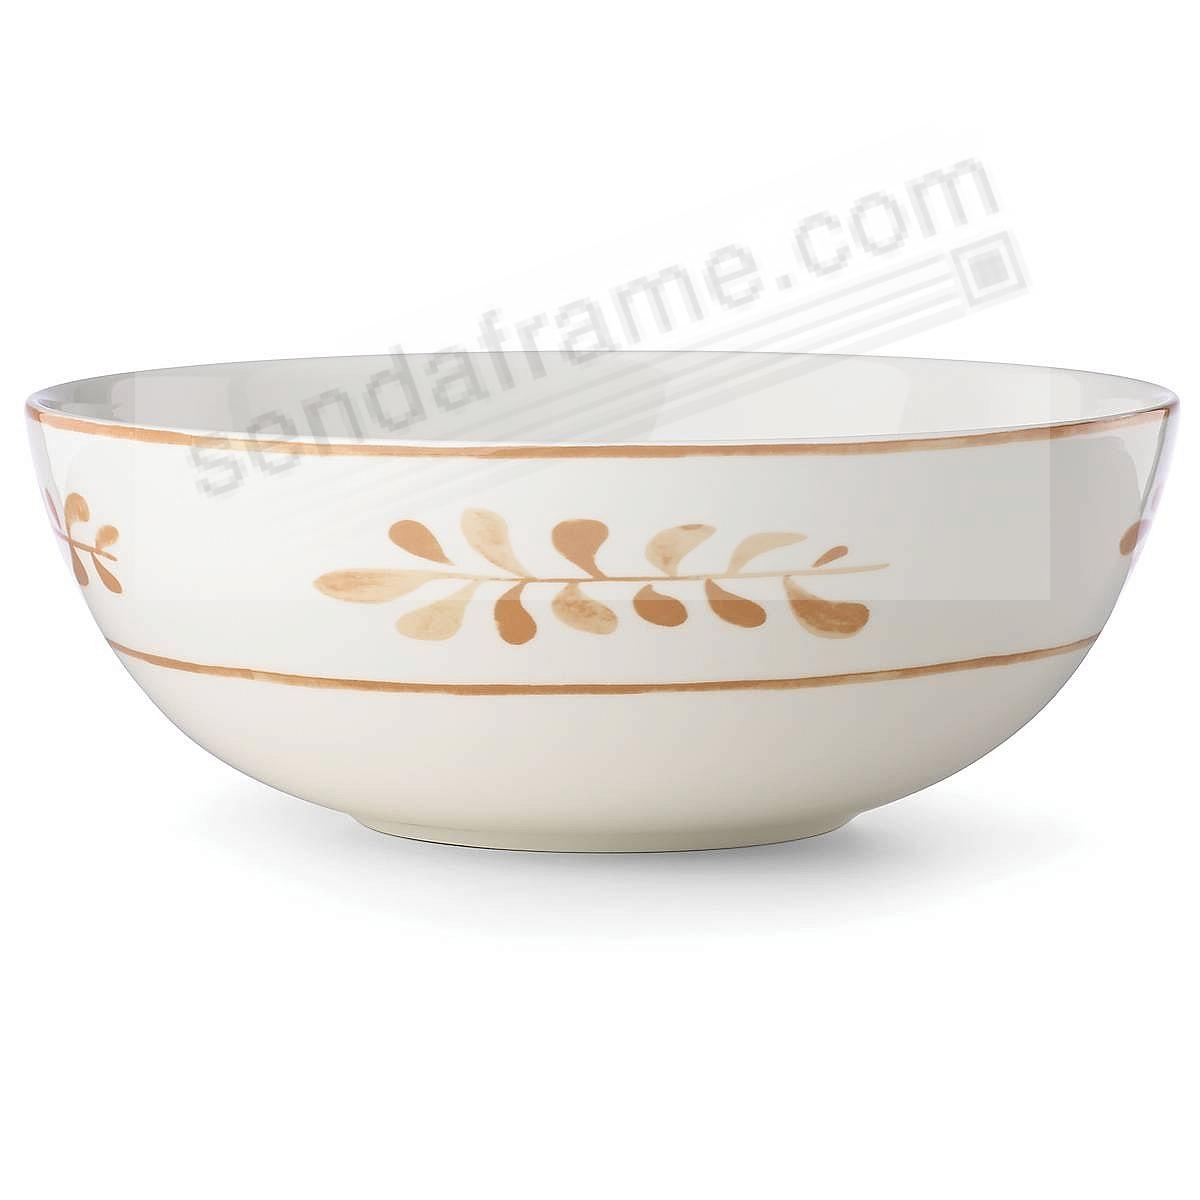 SIENNA LANE LEAVES Serving Bowl by kate spade new york®